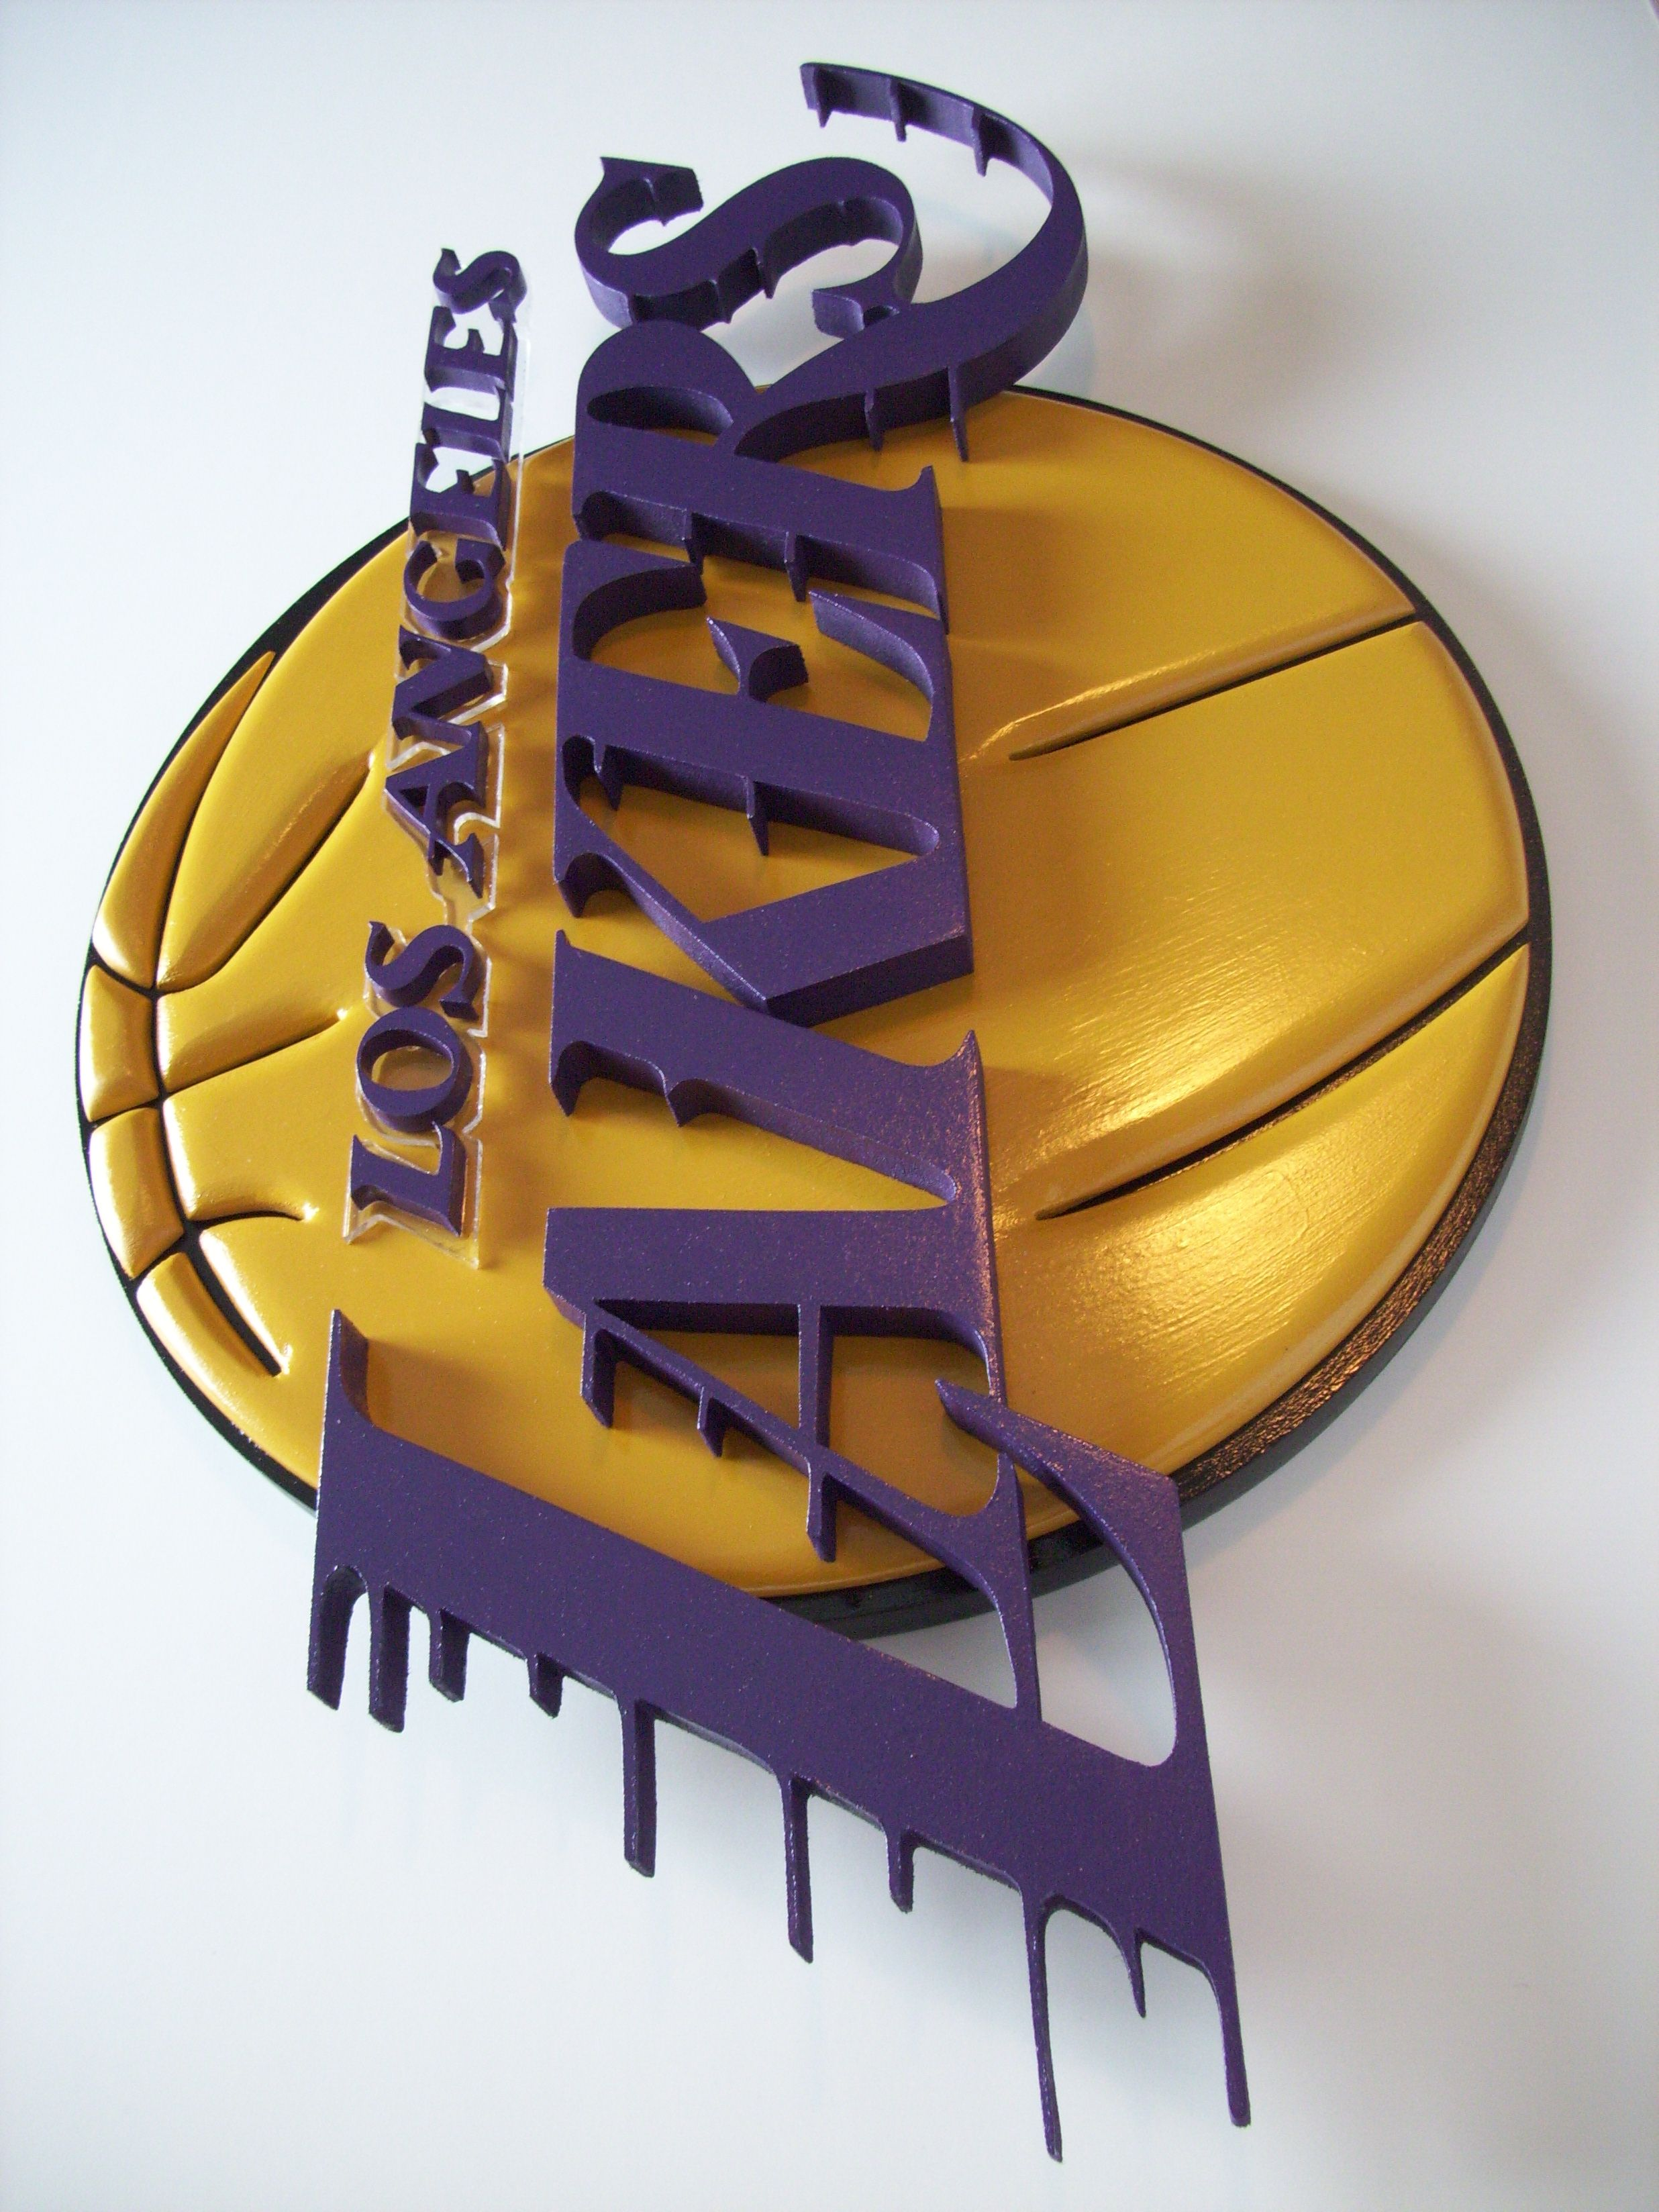 Beachwoods Facebook Lakers Man Cave Ideas Air Max Classic Lakers Wallpaper